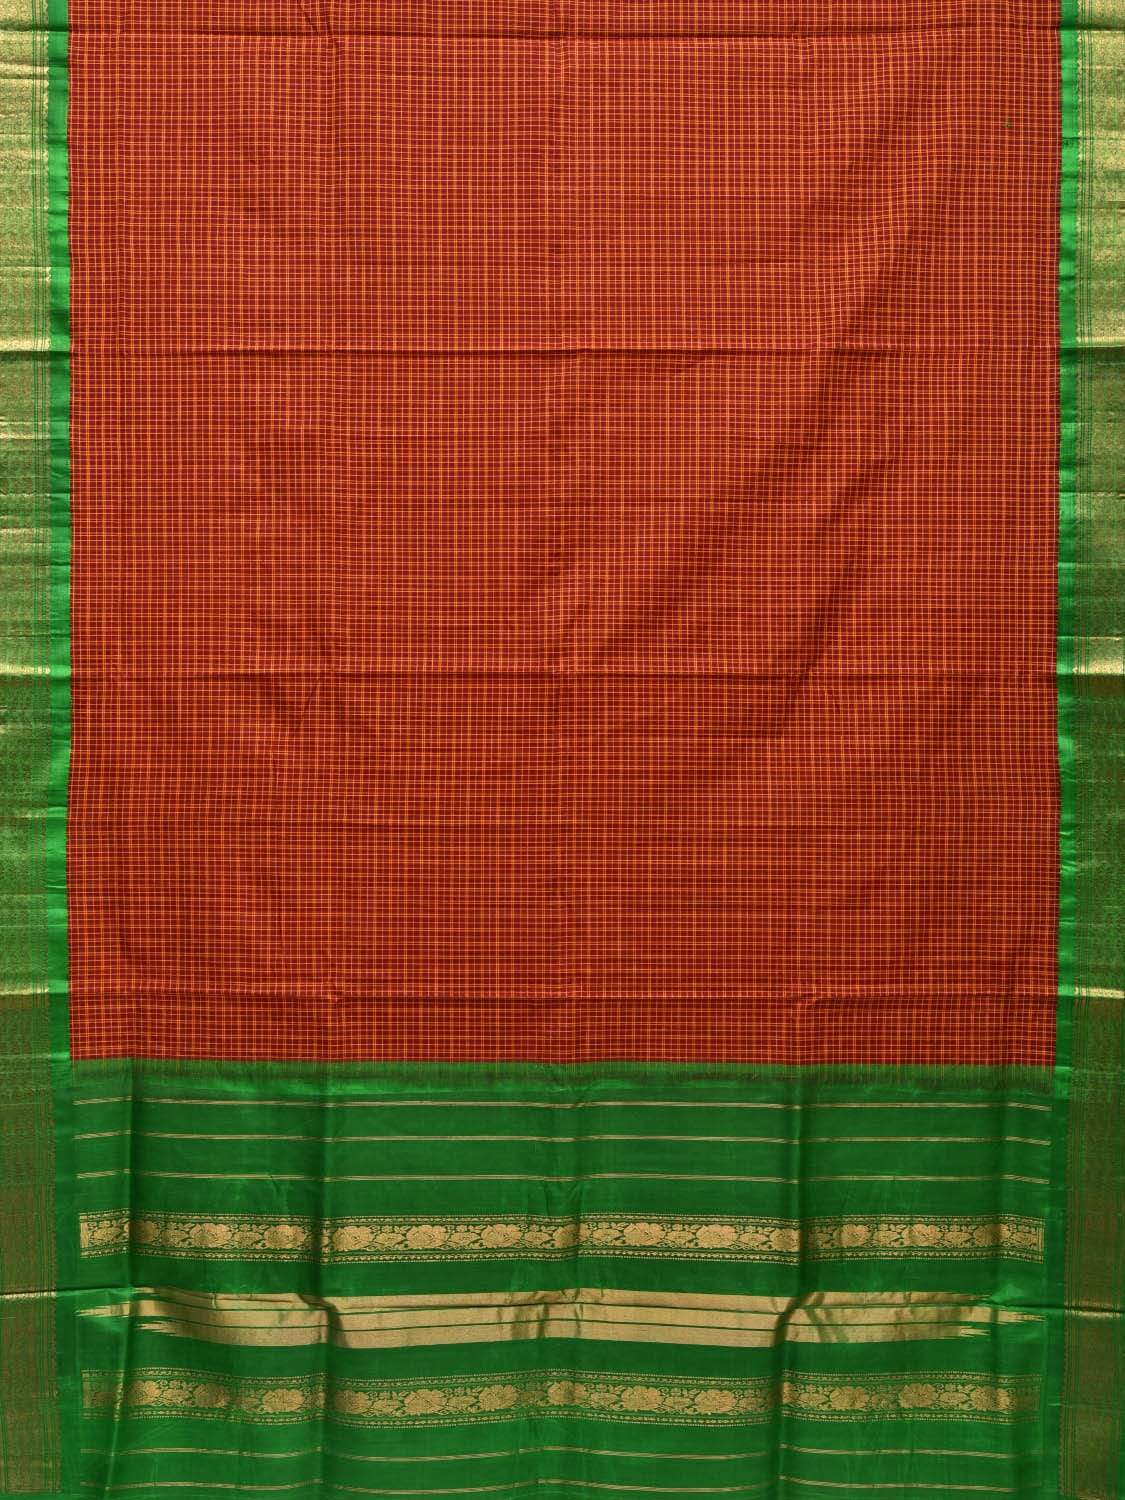 Red and Green Gadwal Cotton Silk Handloom Saree with Checks Design g0259